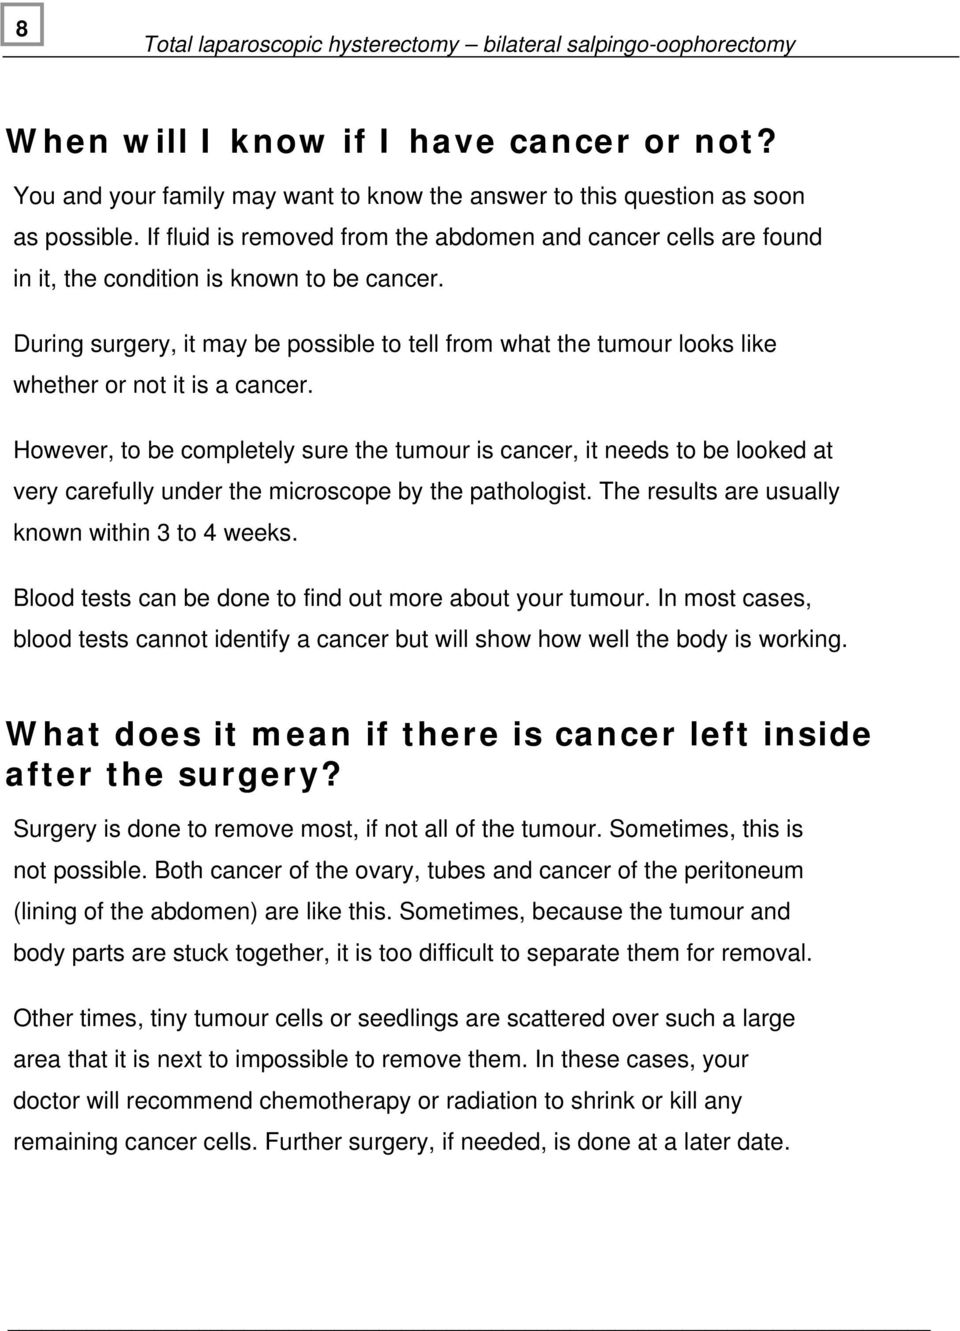 During surgery, it may be possible to tell from what the tumour looks like whether or not it is a cancer.